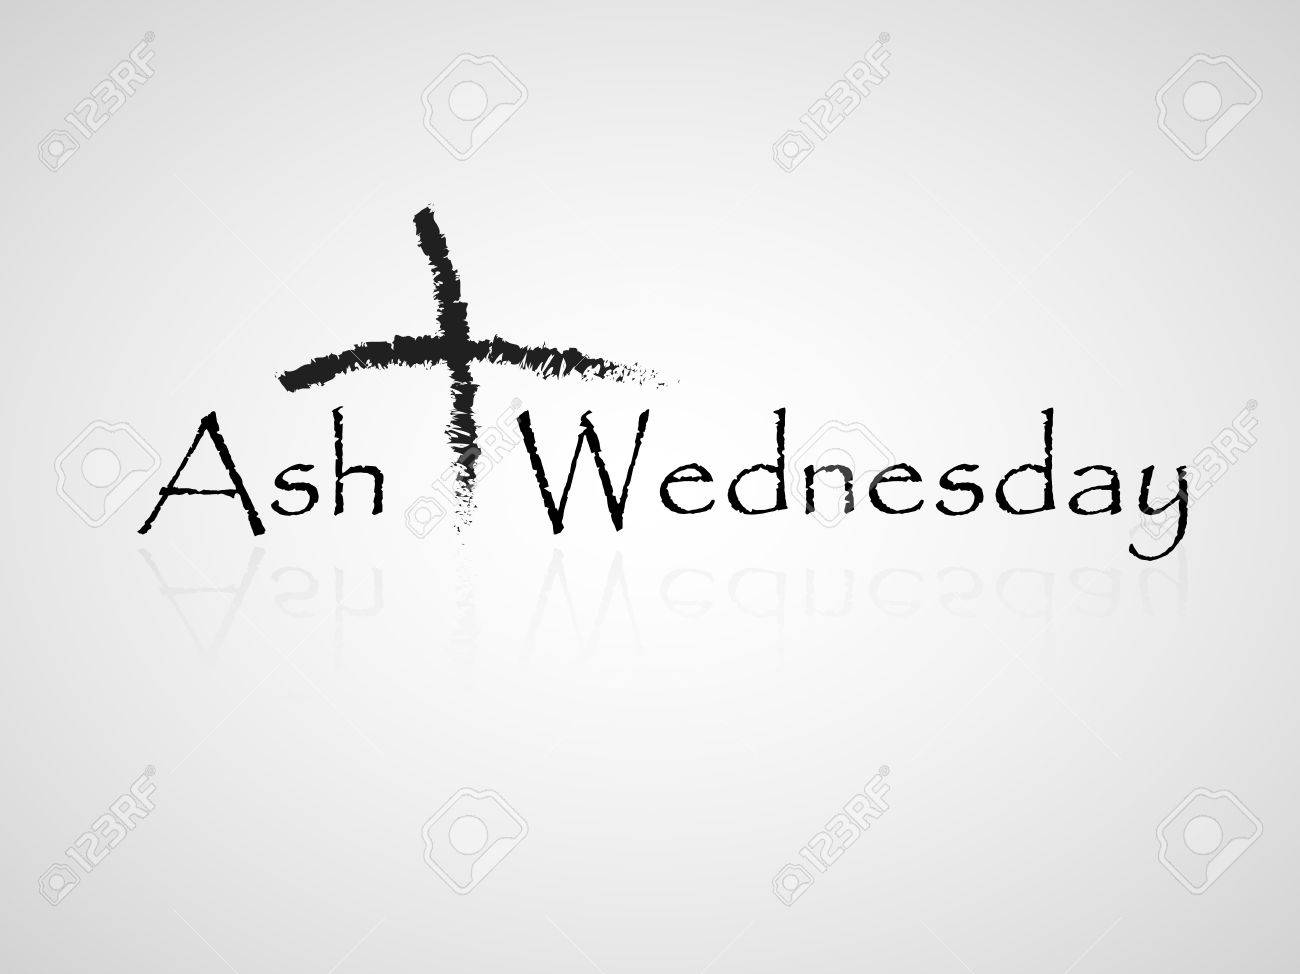 286 Ash Wednesday Cliparts Stock Vector And Royalty Free Ash